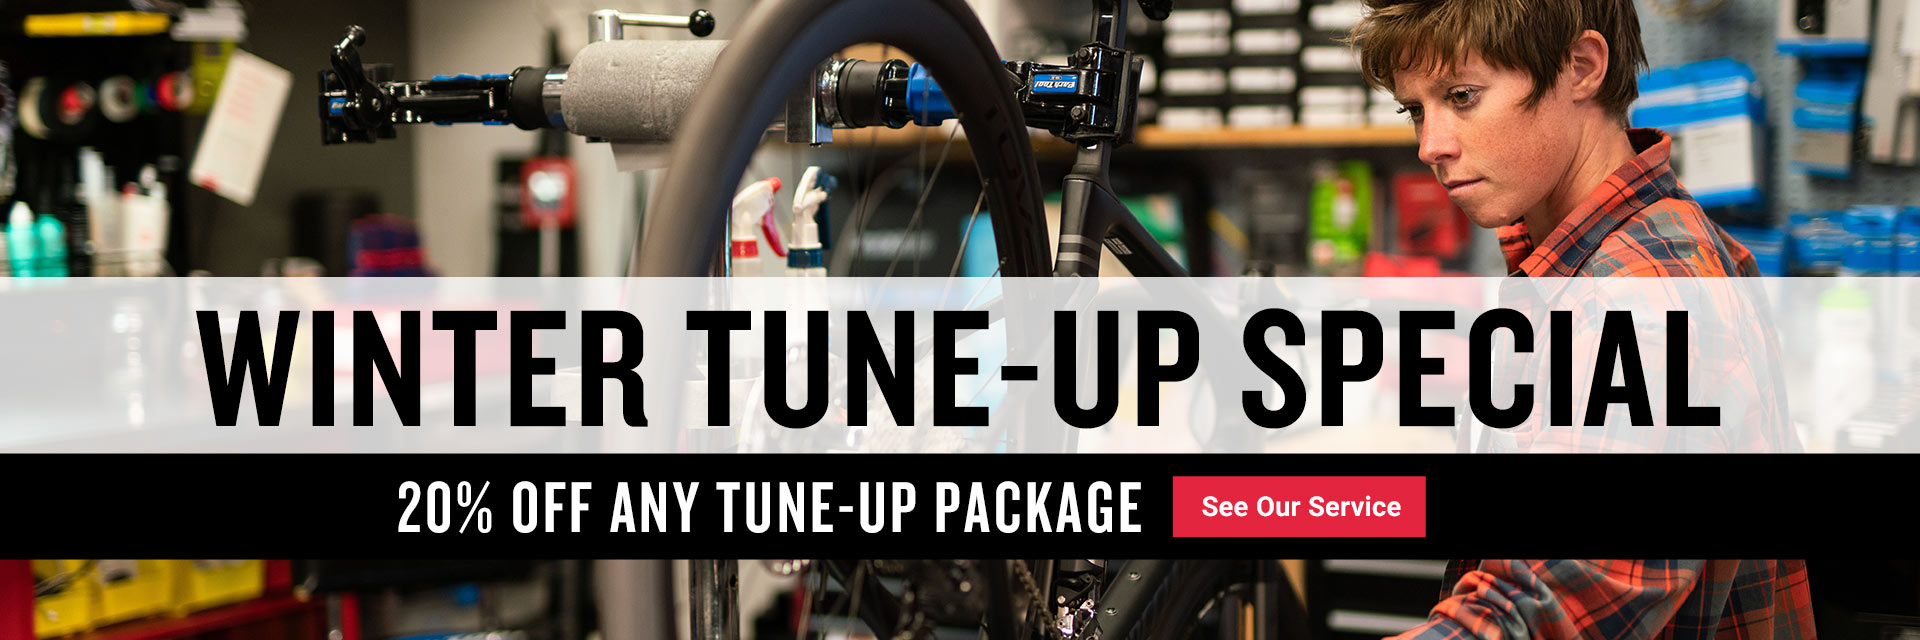 Save 20% off any tune-up